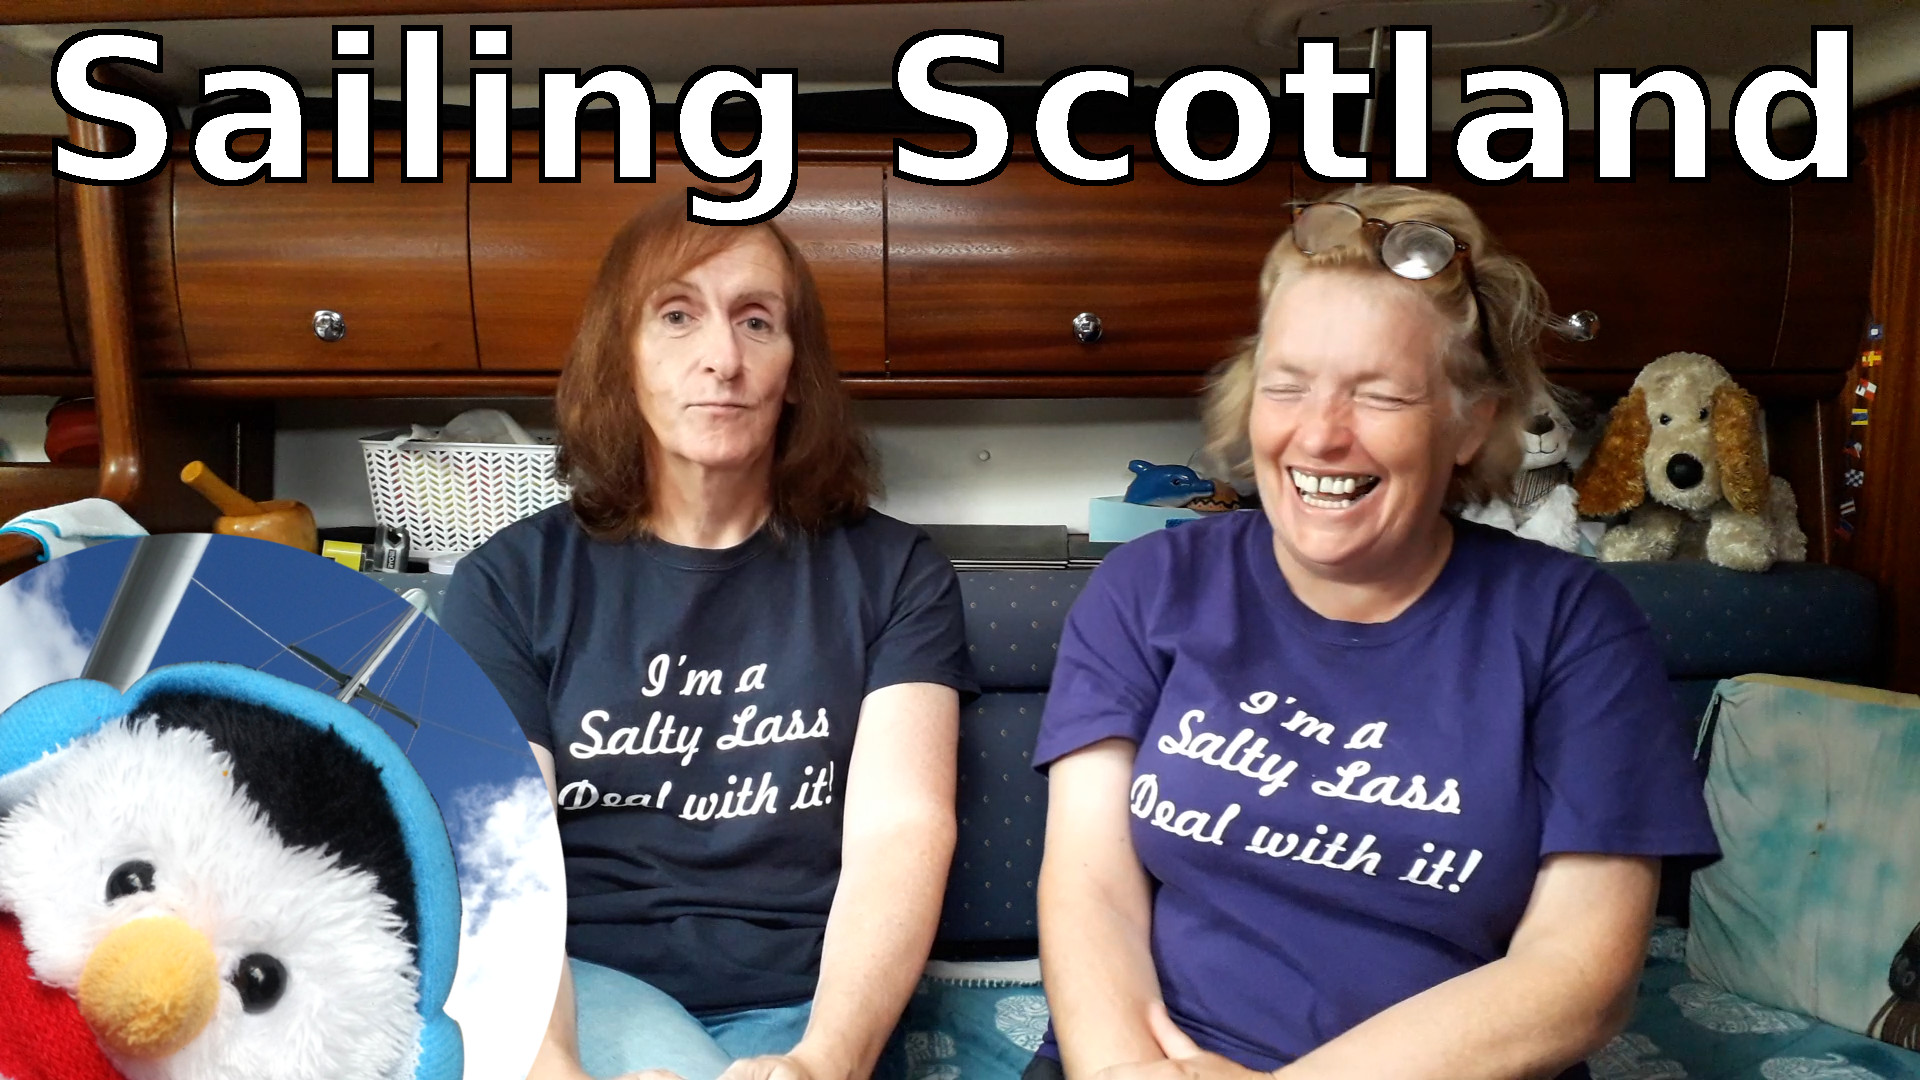 Watch our 'Sailing Scotland' video and add comments etc.